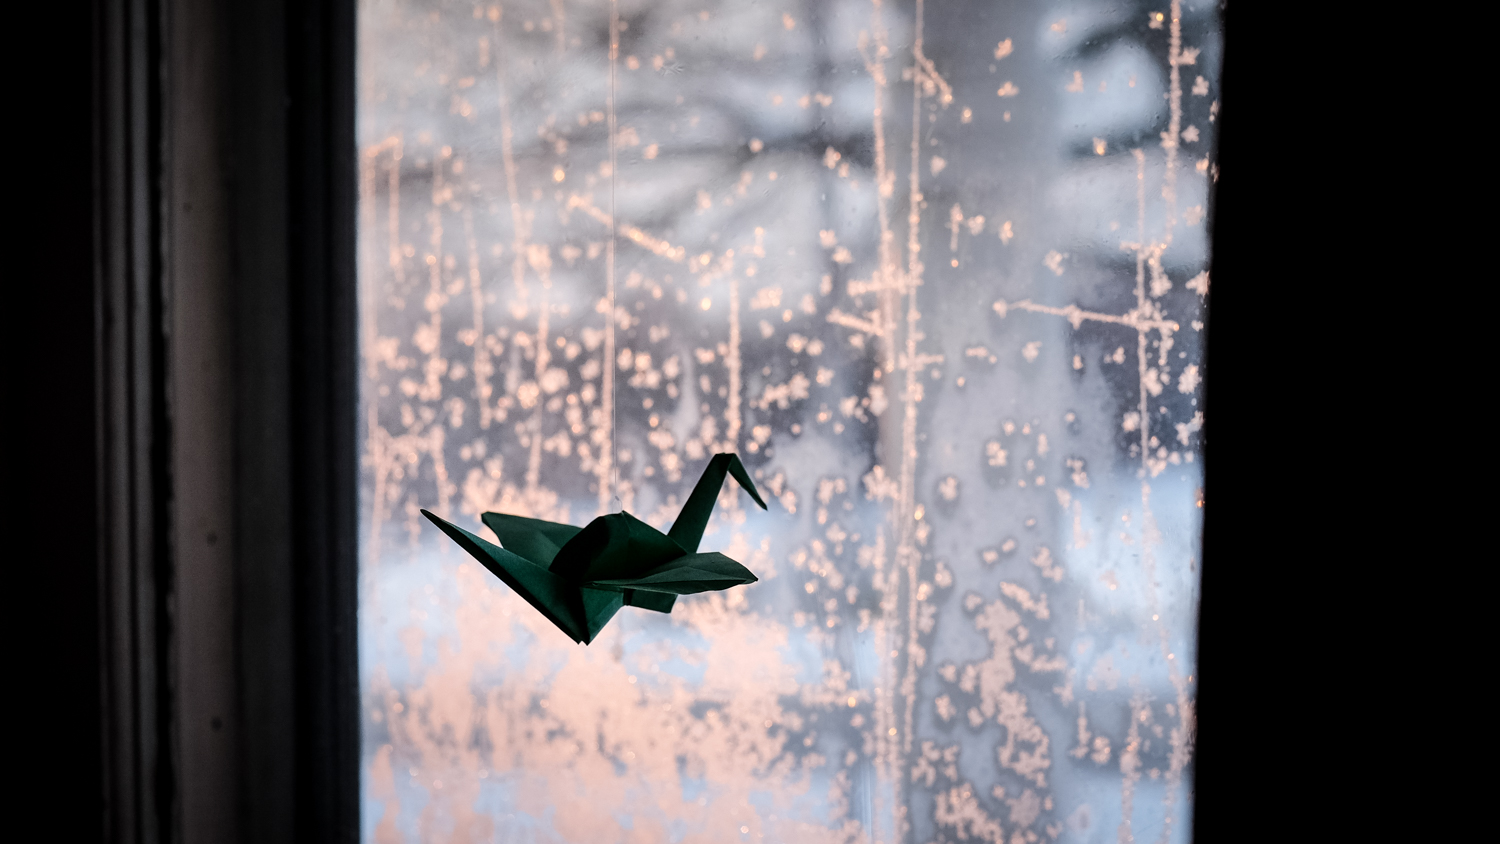 Image: I normally just walk right by windows. But the light, frost and paper crane caught my eye.